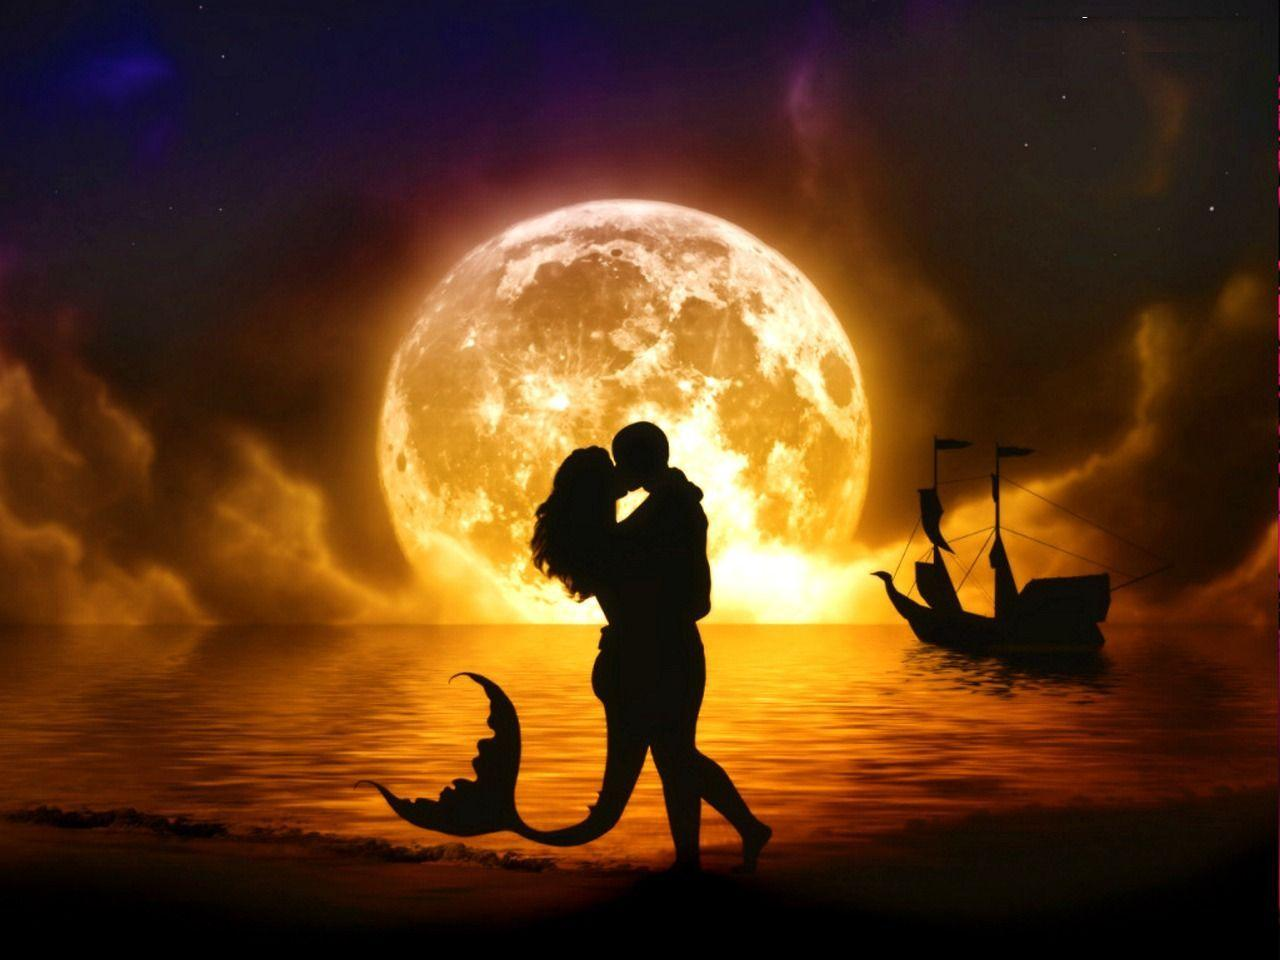 Love Wallpapers With Kiss : Love Kiss Pictures Wallpapers - Wallpaper cave